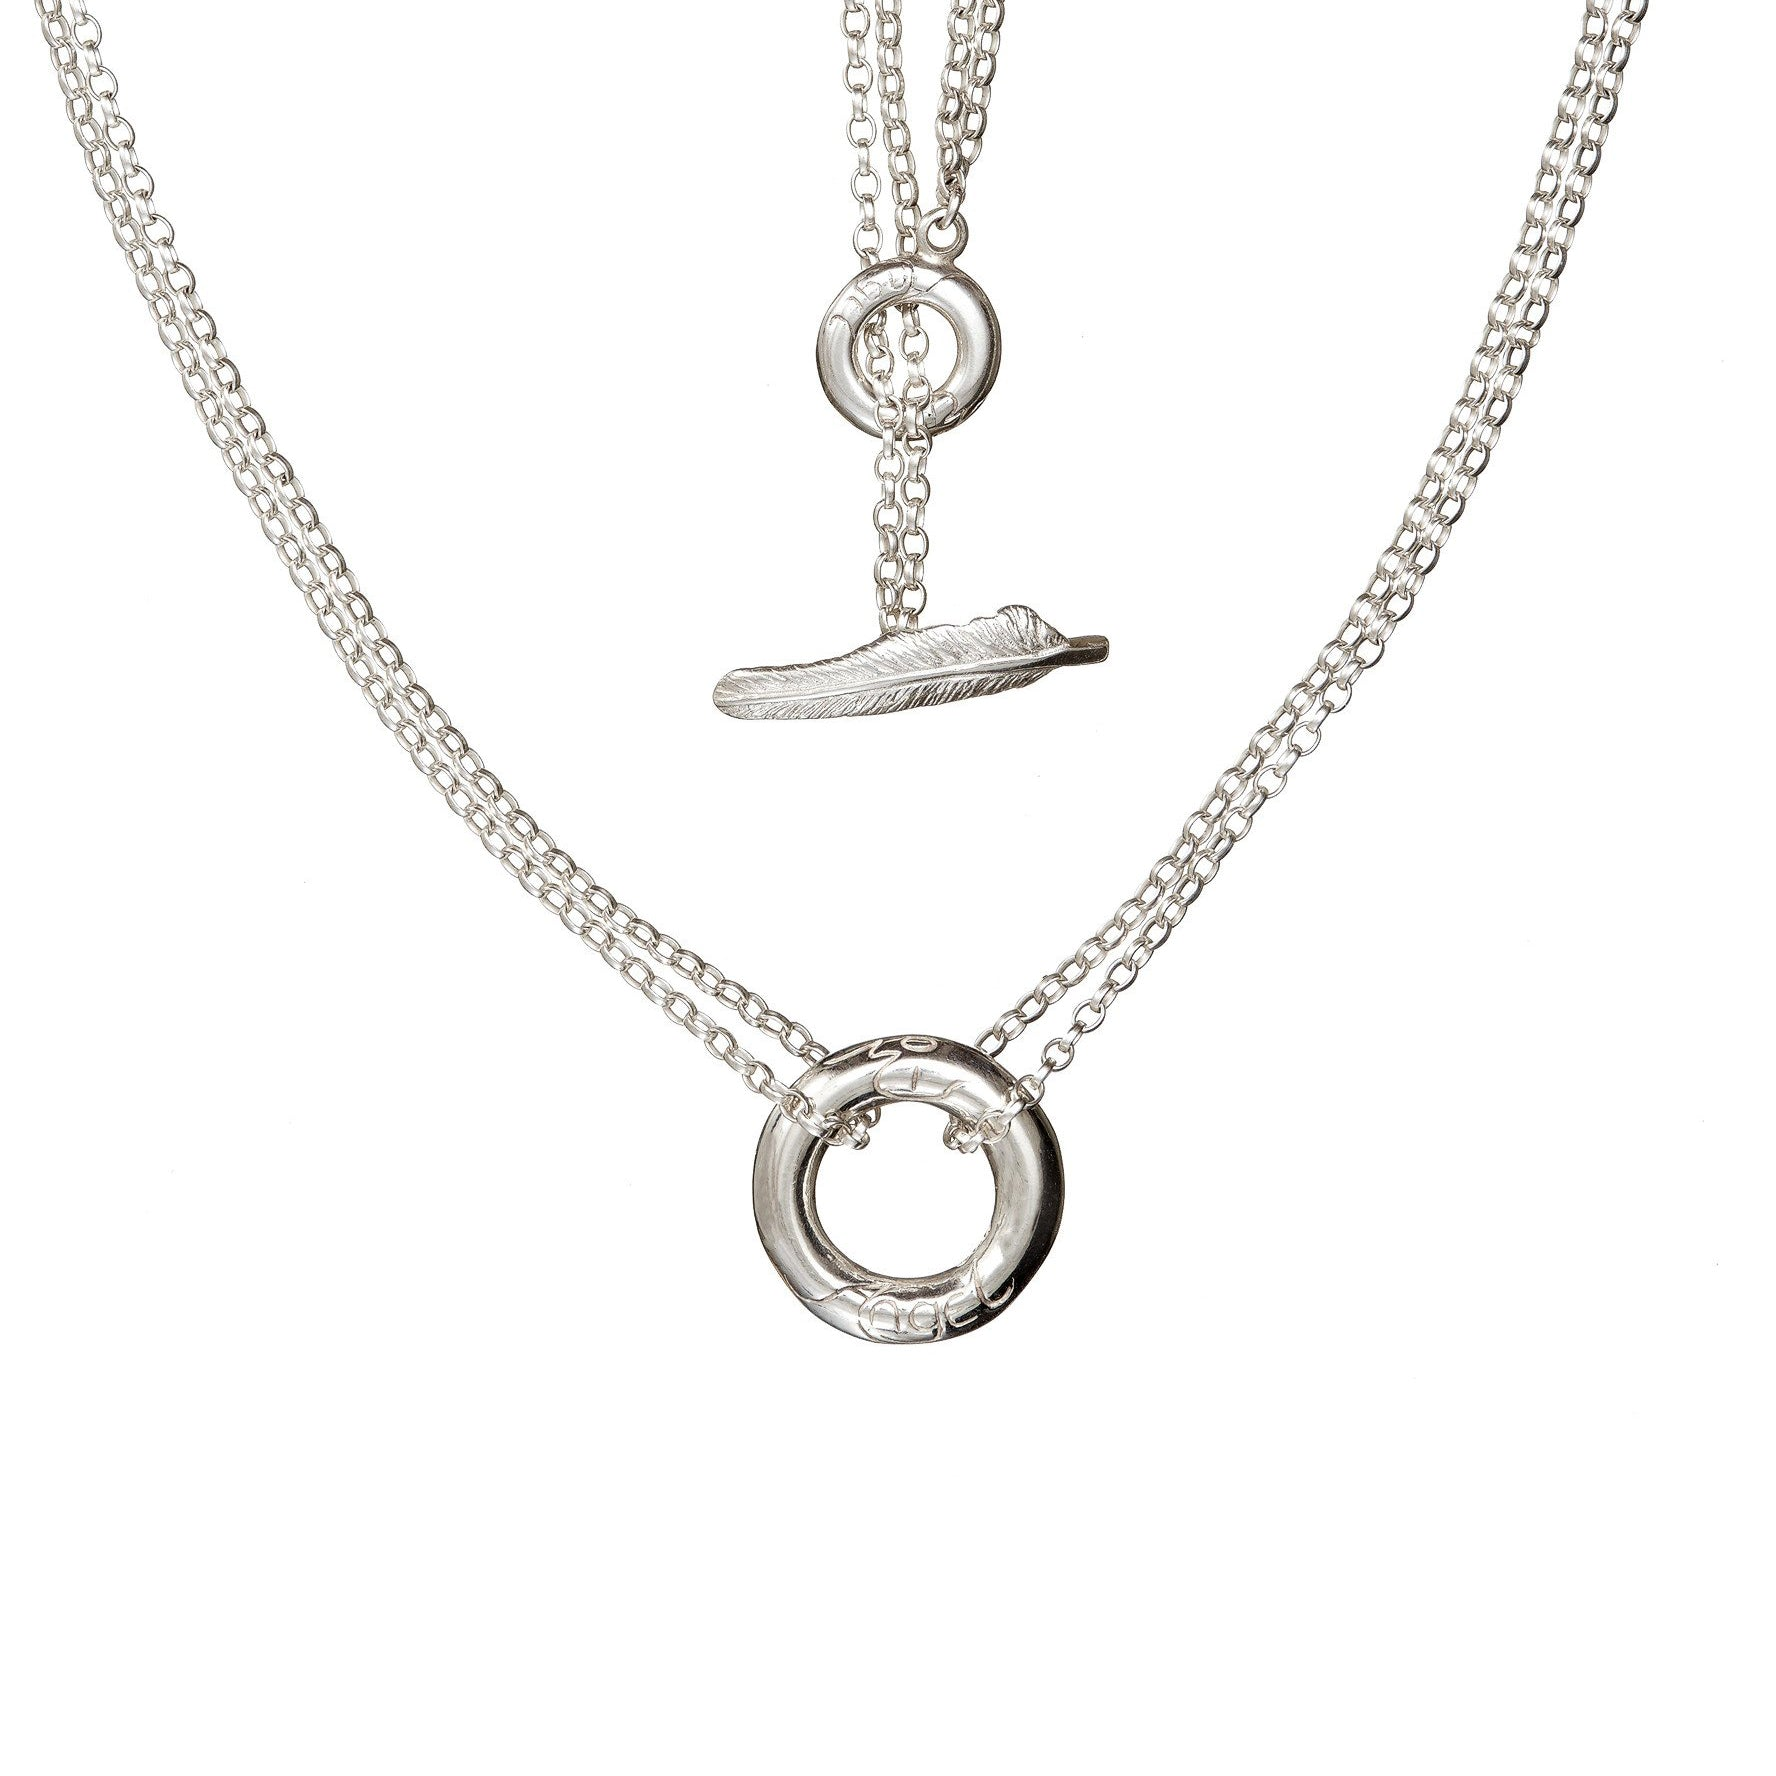 Elena's Embrace of the Angels Necklet, handcrafted from sterling silver, it is a special gift from the Angels.